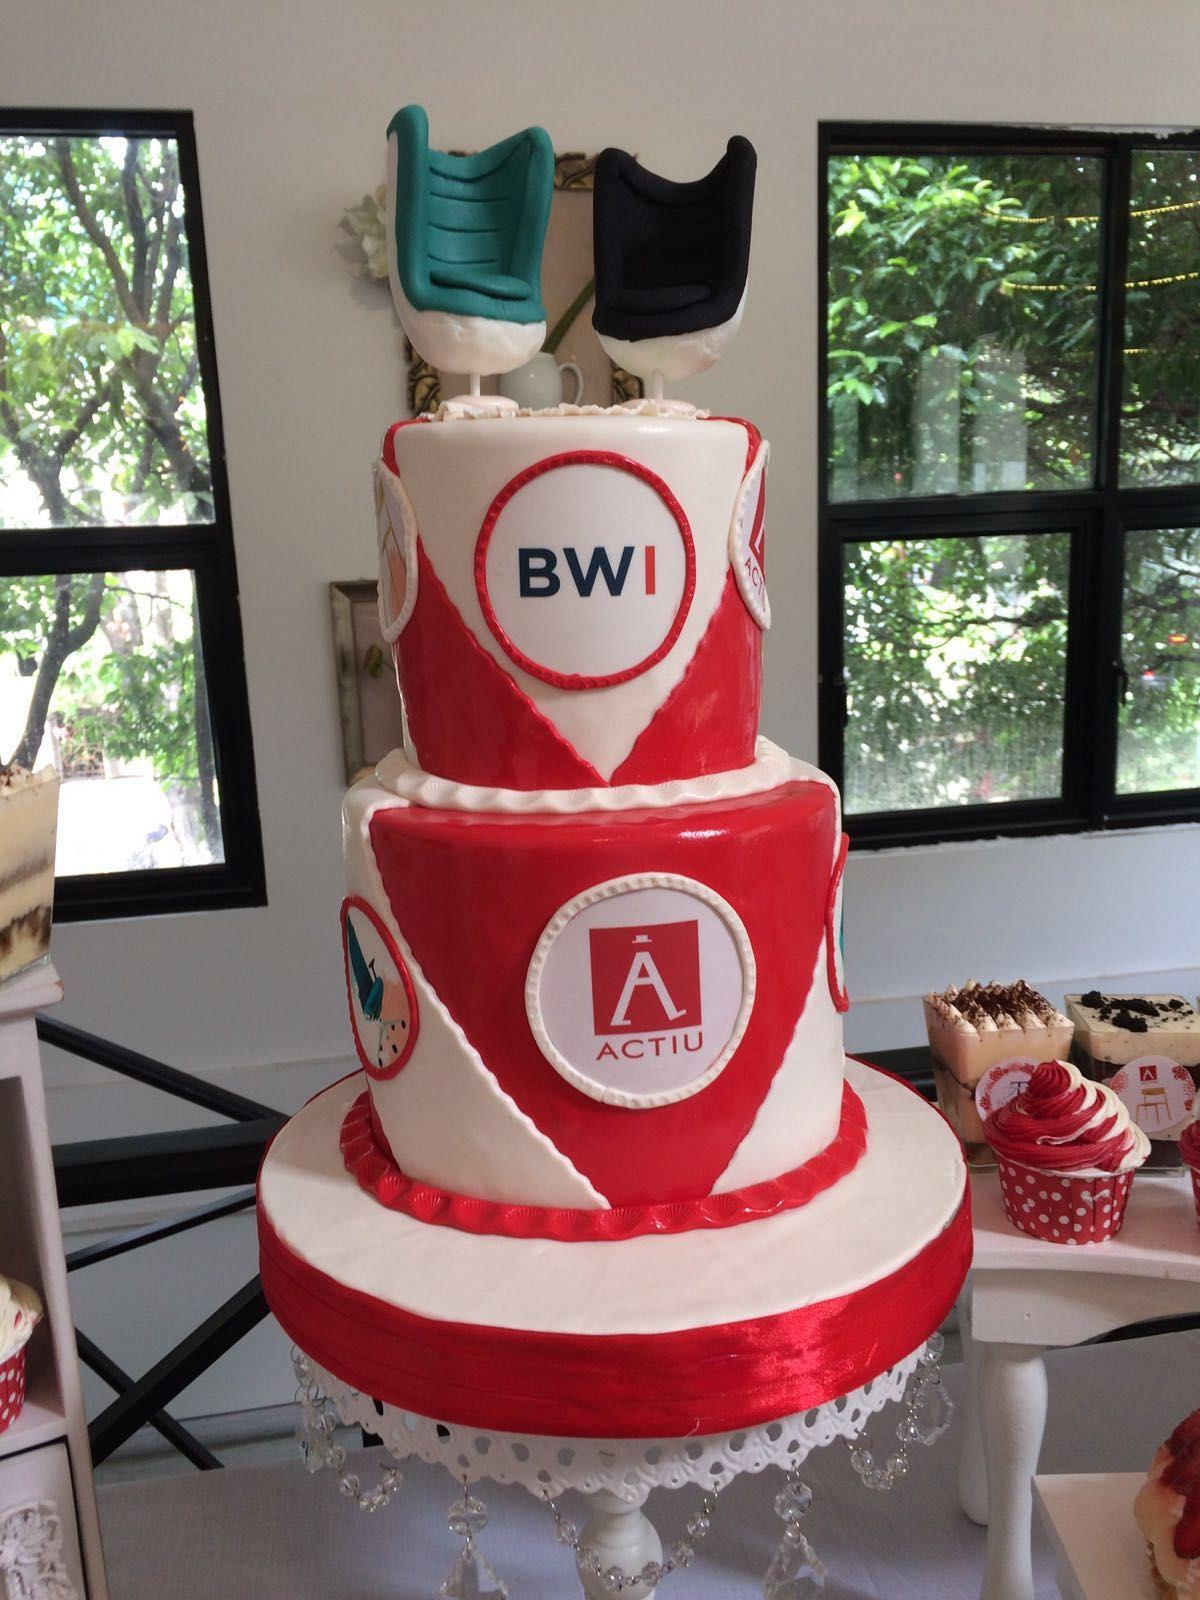 In a multitudinous event, BWI introduces the brand Actiu to the Indonesian market 5